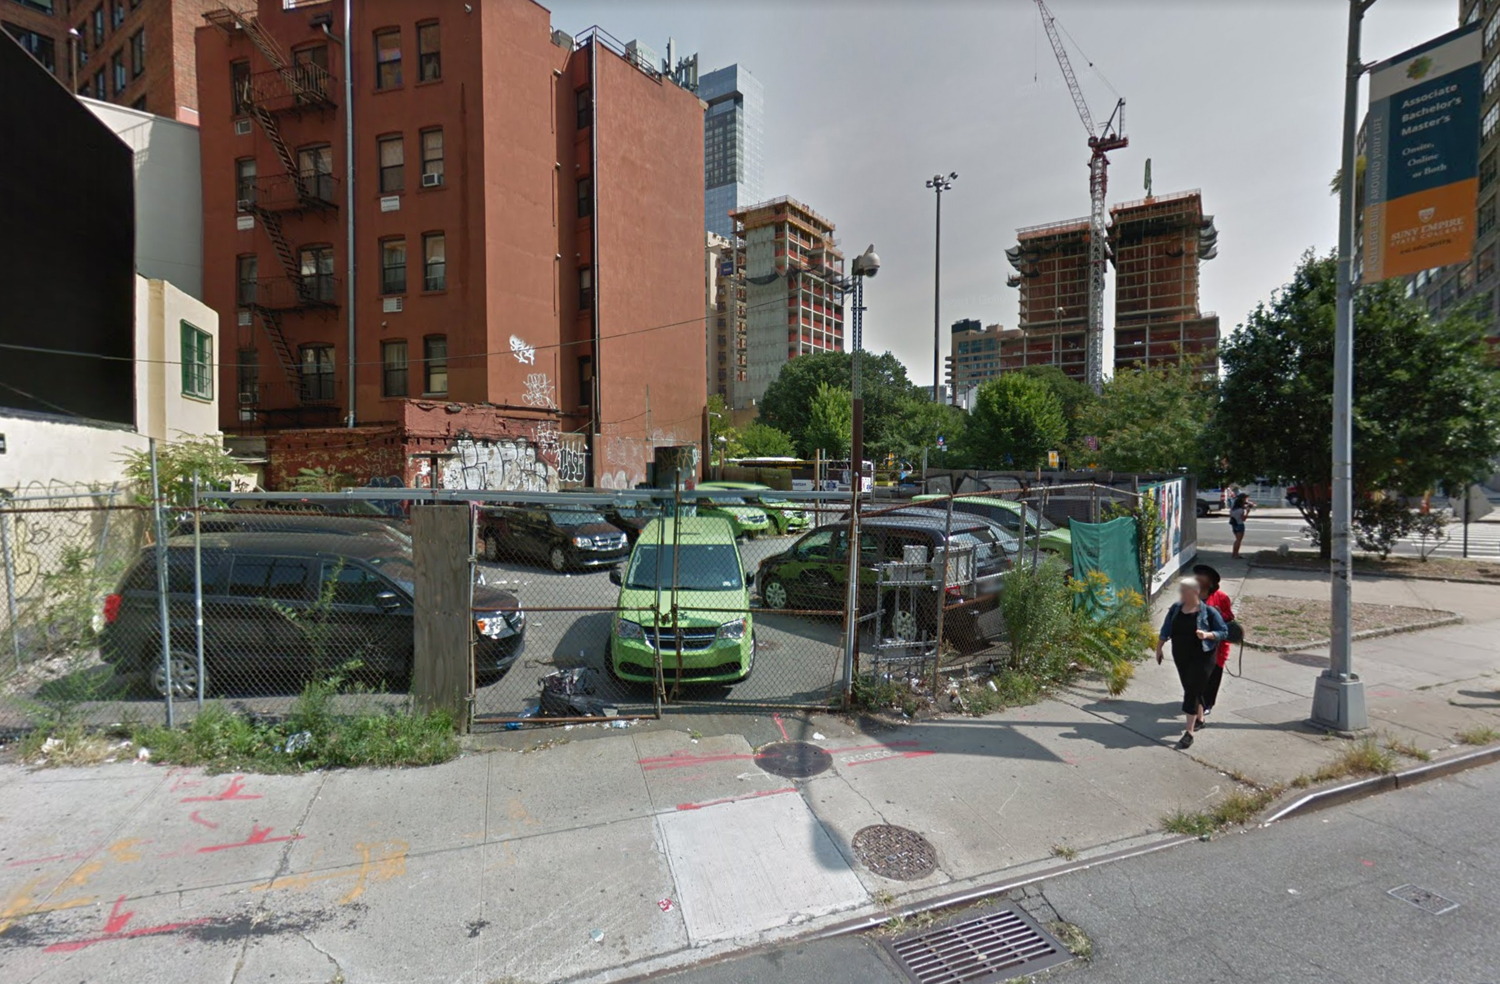 219 Hudson Street, via Google Maps